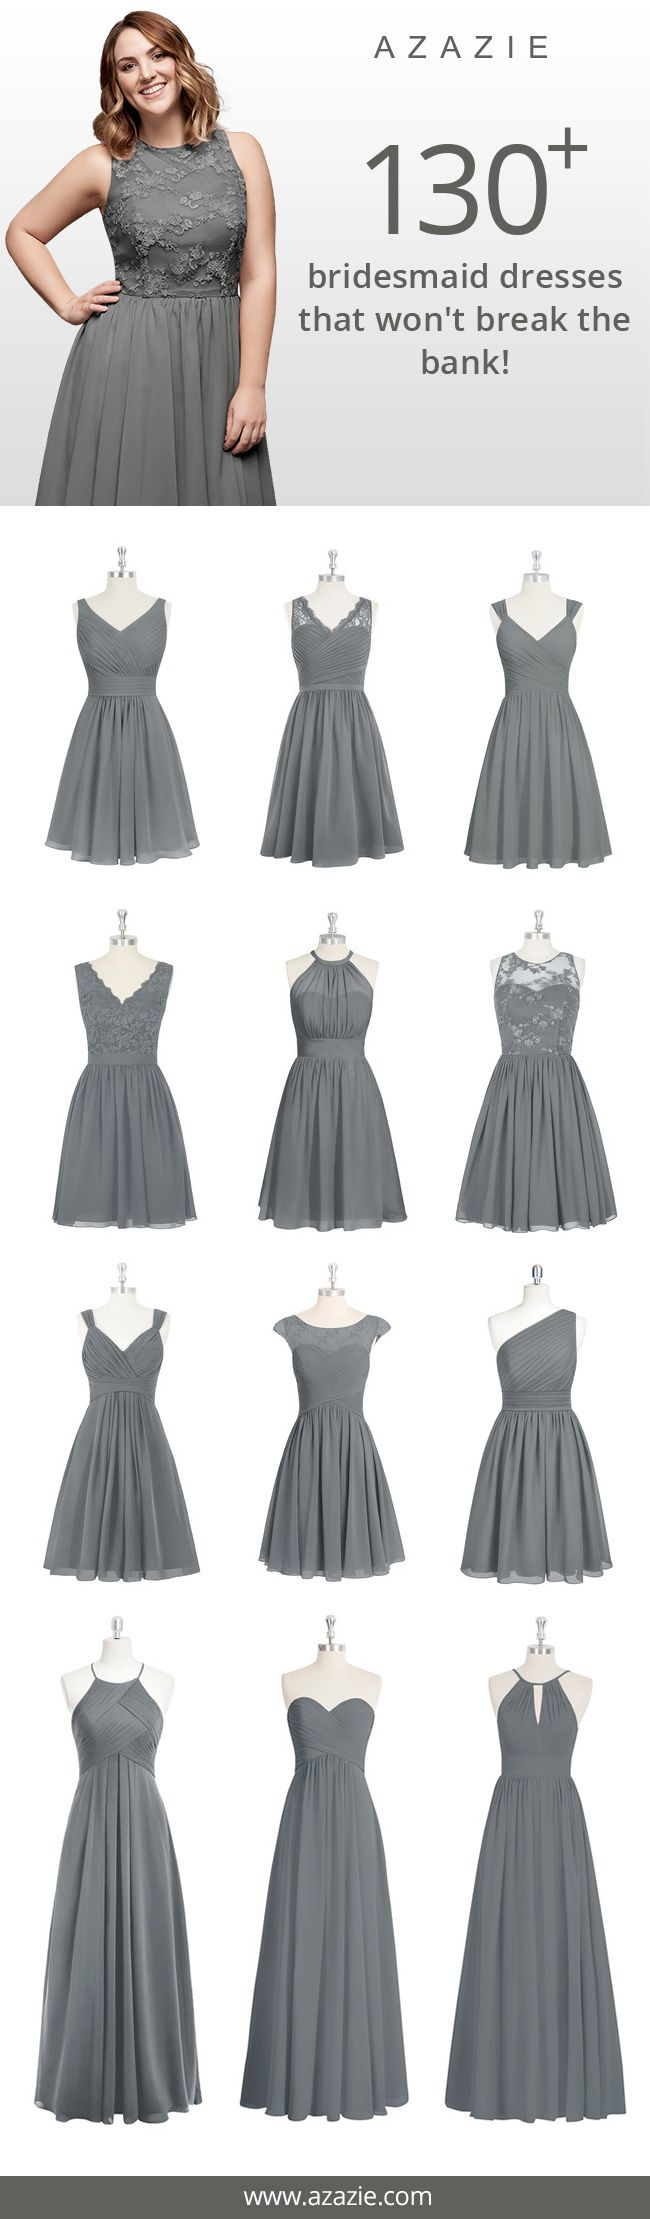 Black dress match with what colour - Azazie Is The Online Destination For Special Occasion Dresses Our Online Boutique Connects Bridesmaids And